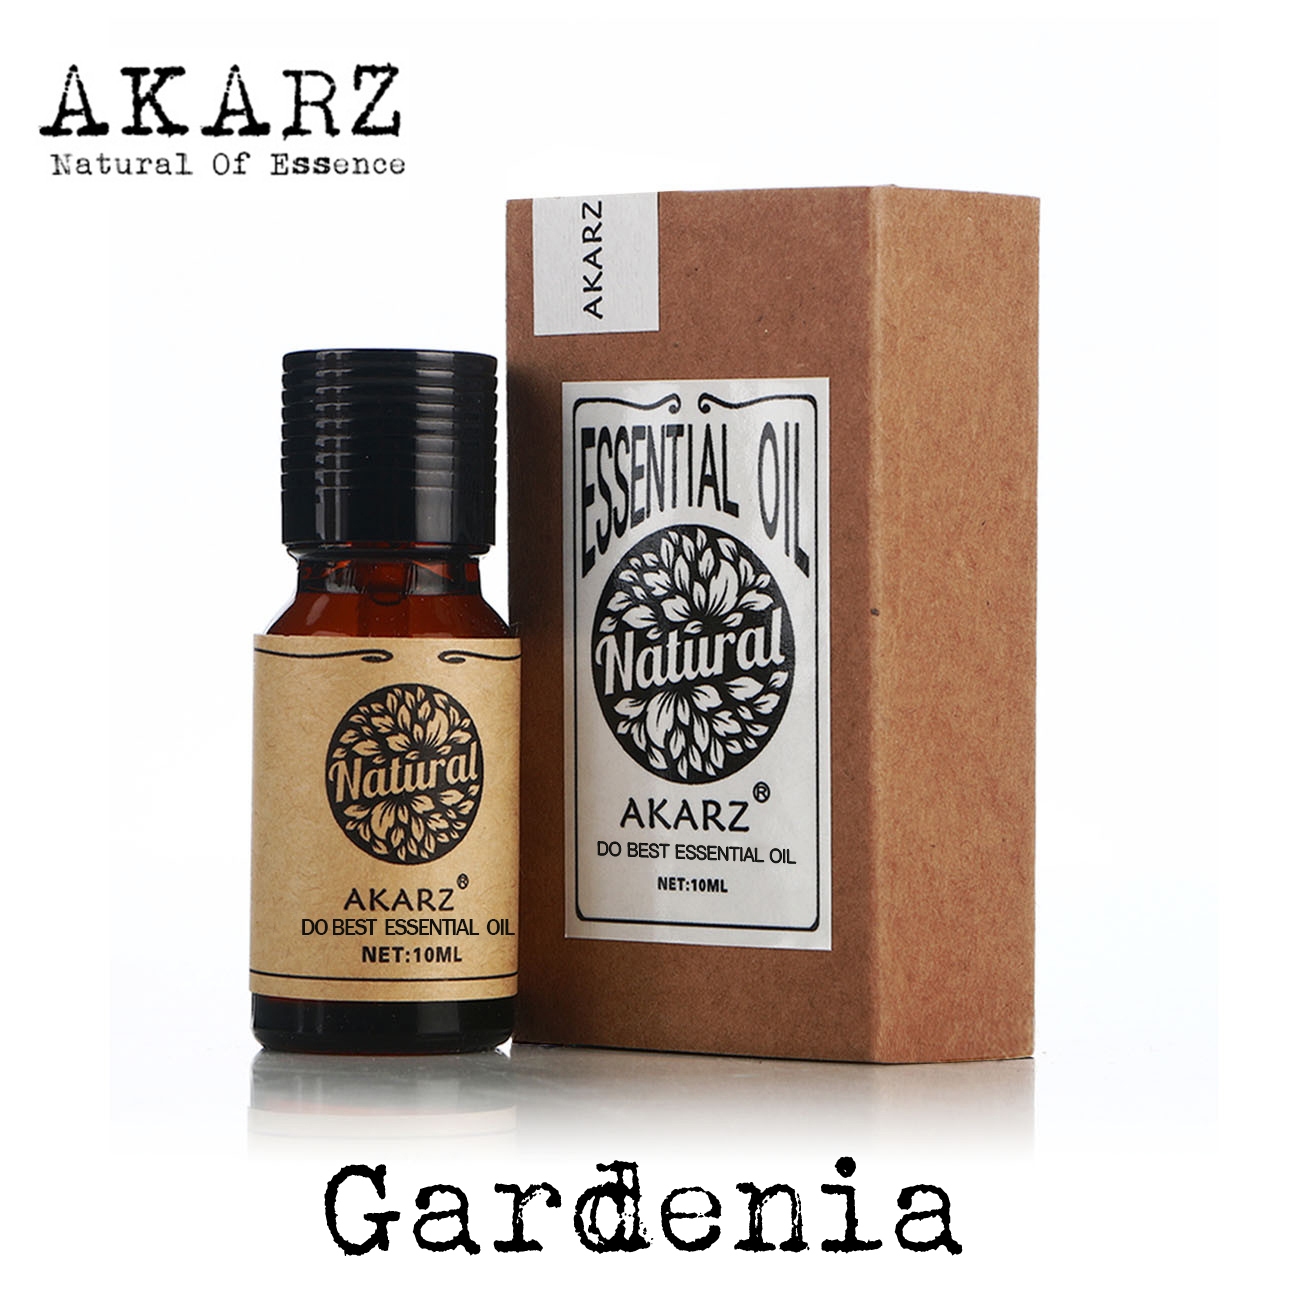 AKARZ Famous brand natural Gardenia oil Relax nerve Moisturizing and nourishing the skin Gardenia essential oil бордюр gardenia orchidea lirica moderno noce 4x60